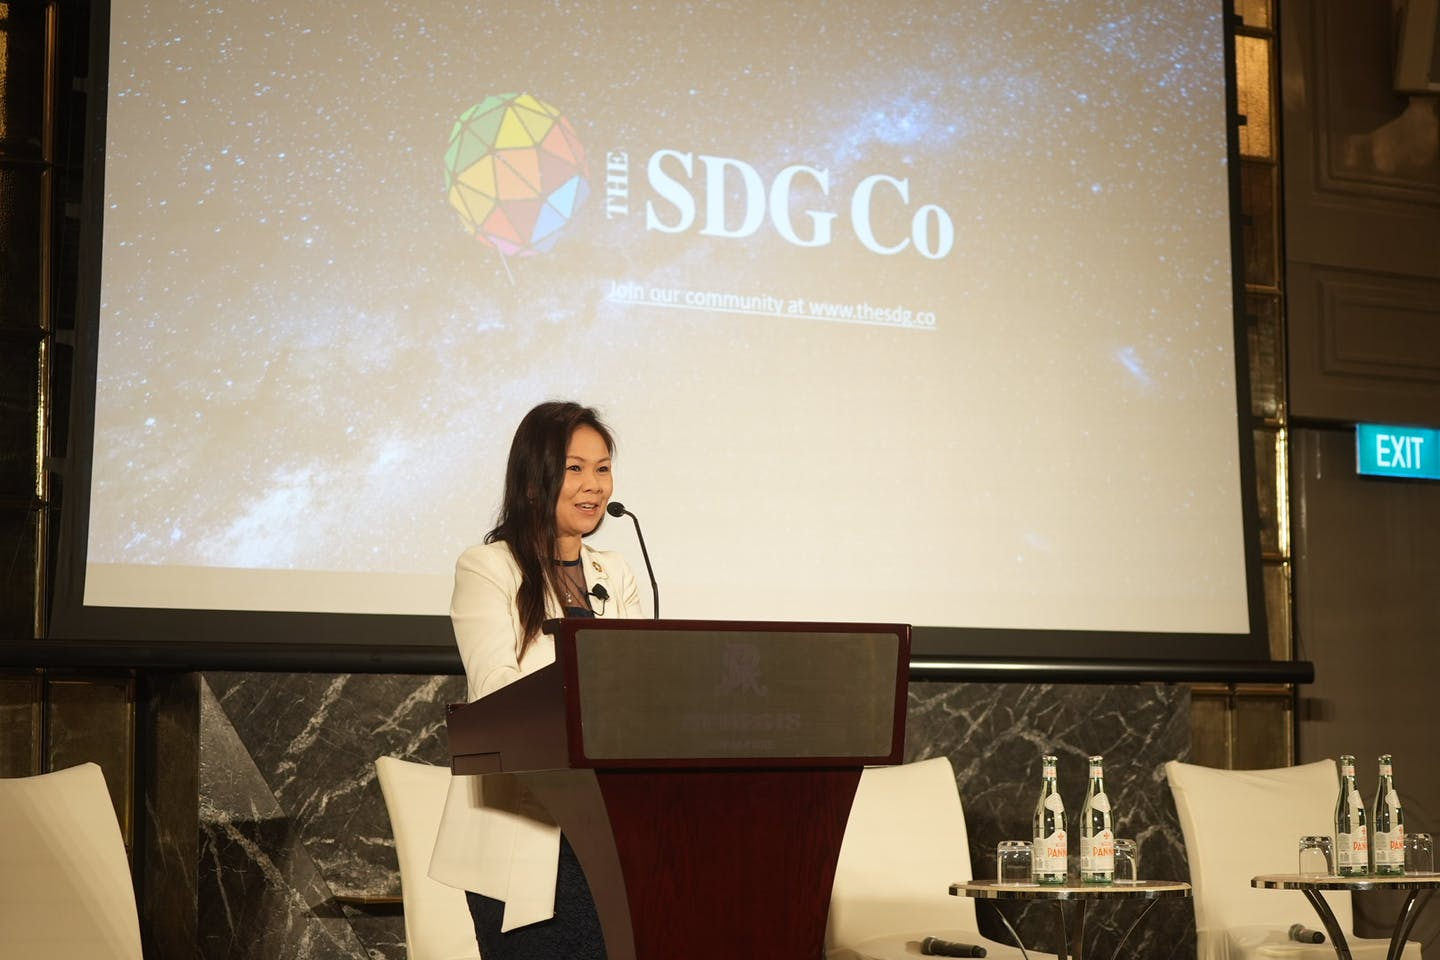 unveiling of the sdg co